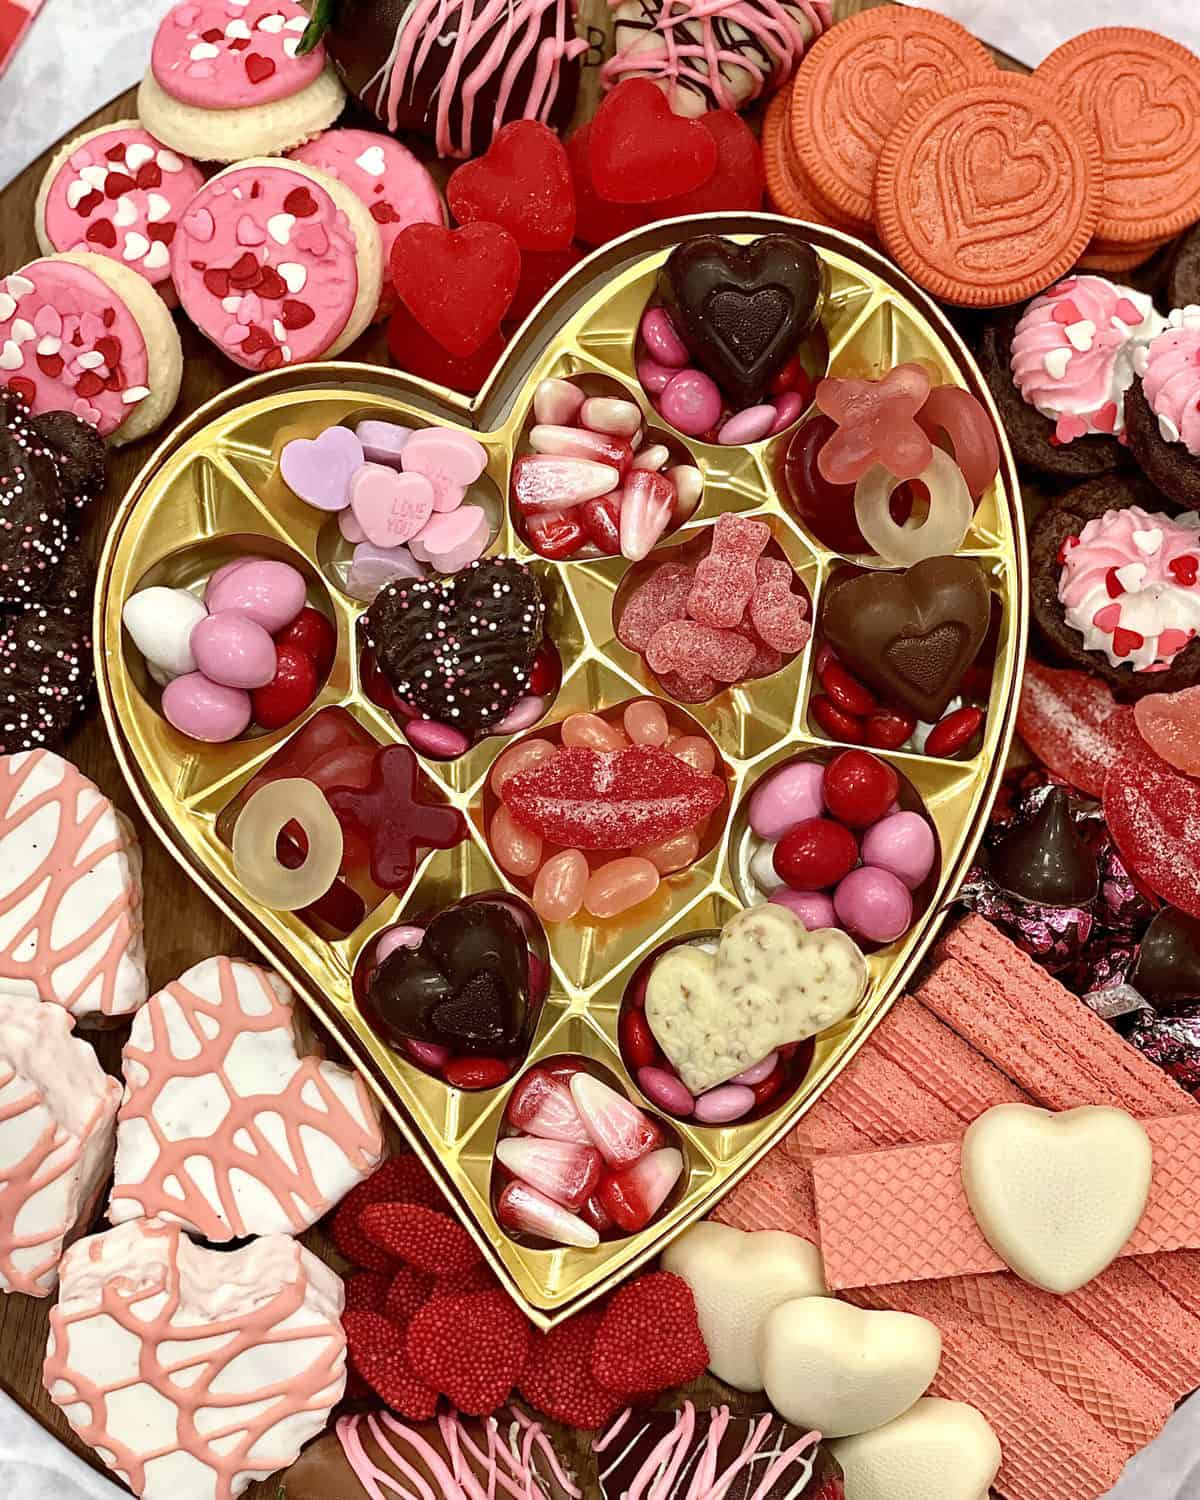 Dessert Board with heart-shaped cakes, conversation hearts, M&Ms, pink and white sugar cookies